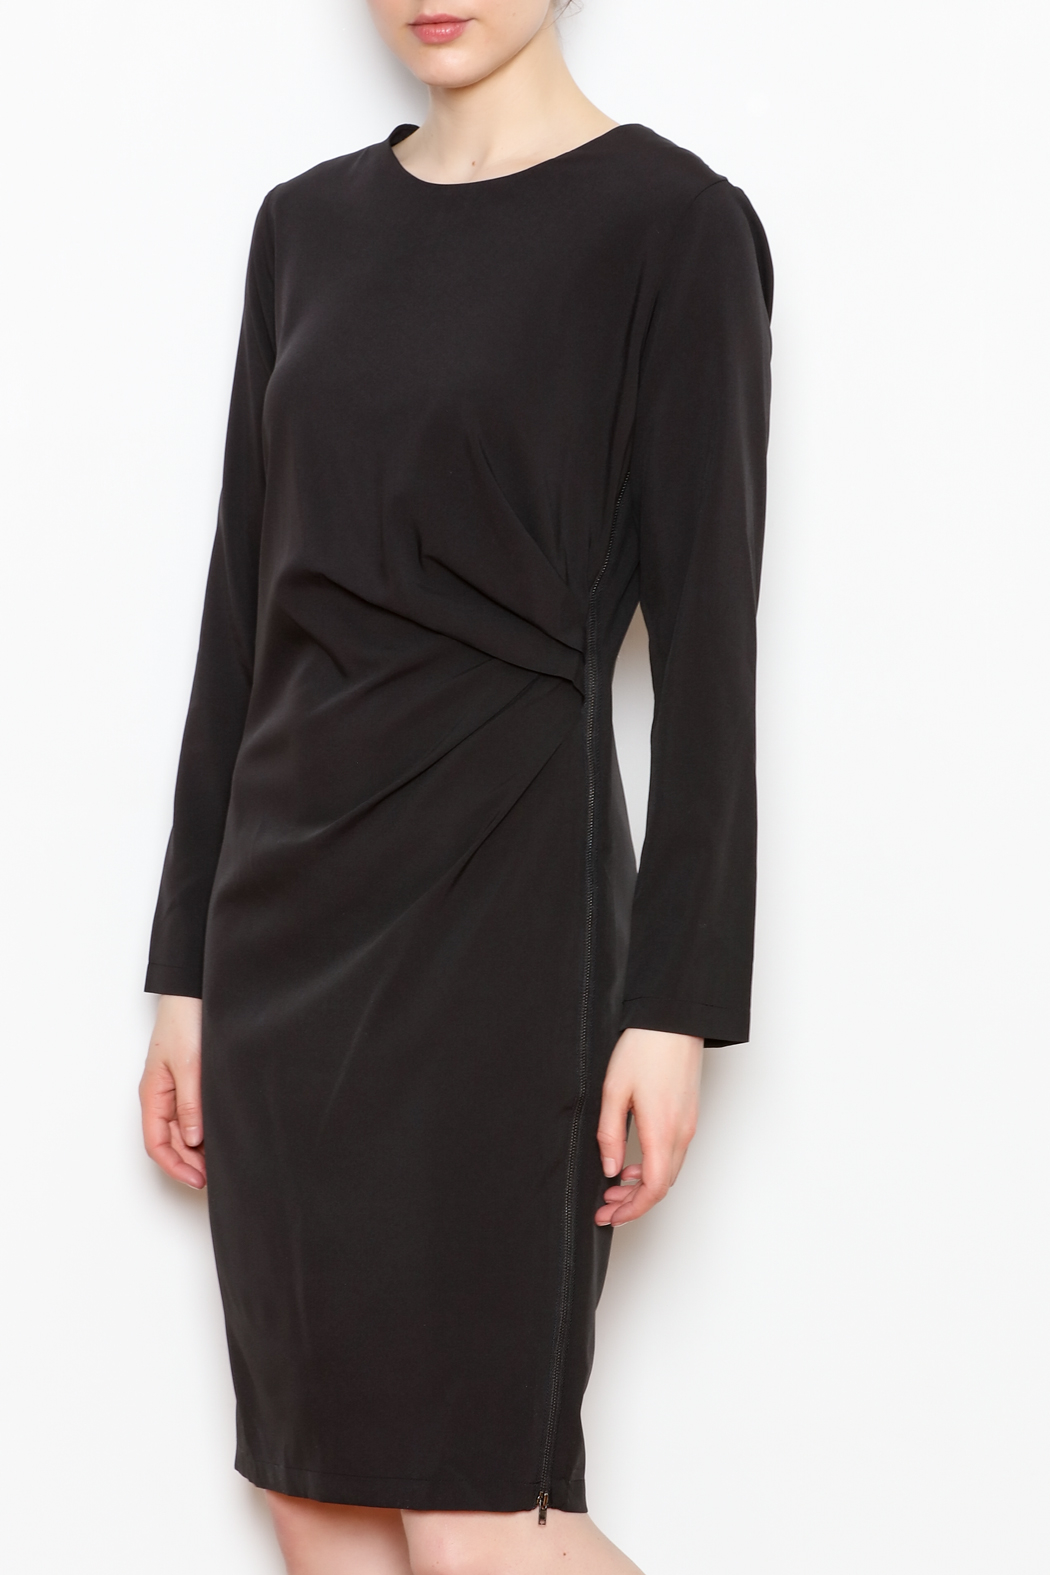 NU New York Black Zipper Dress - Front Cropped Image